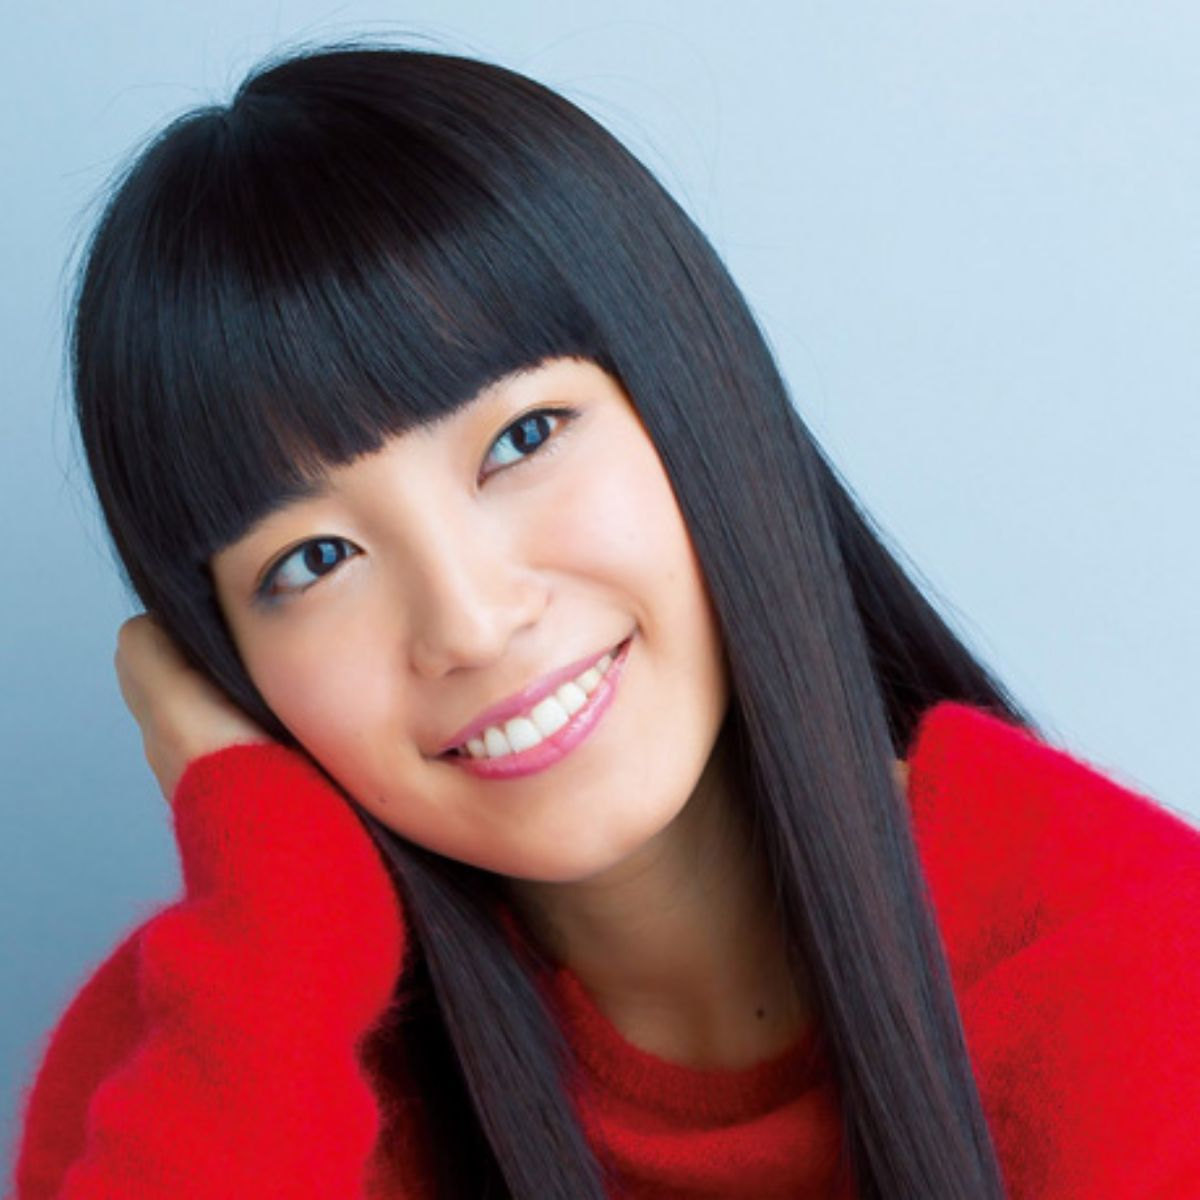 Miwa Wallpapers Music Hq Miwa Pictures 4k Wallpapers 19